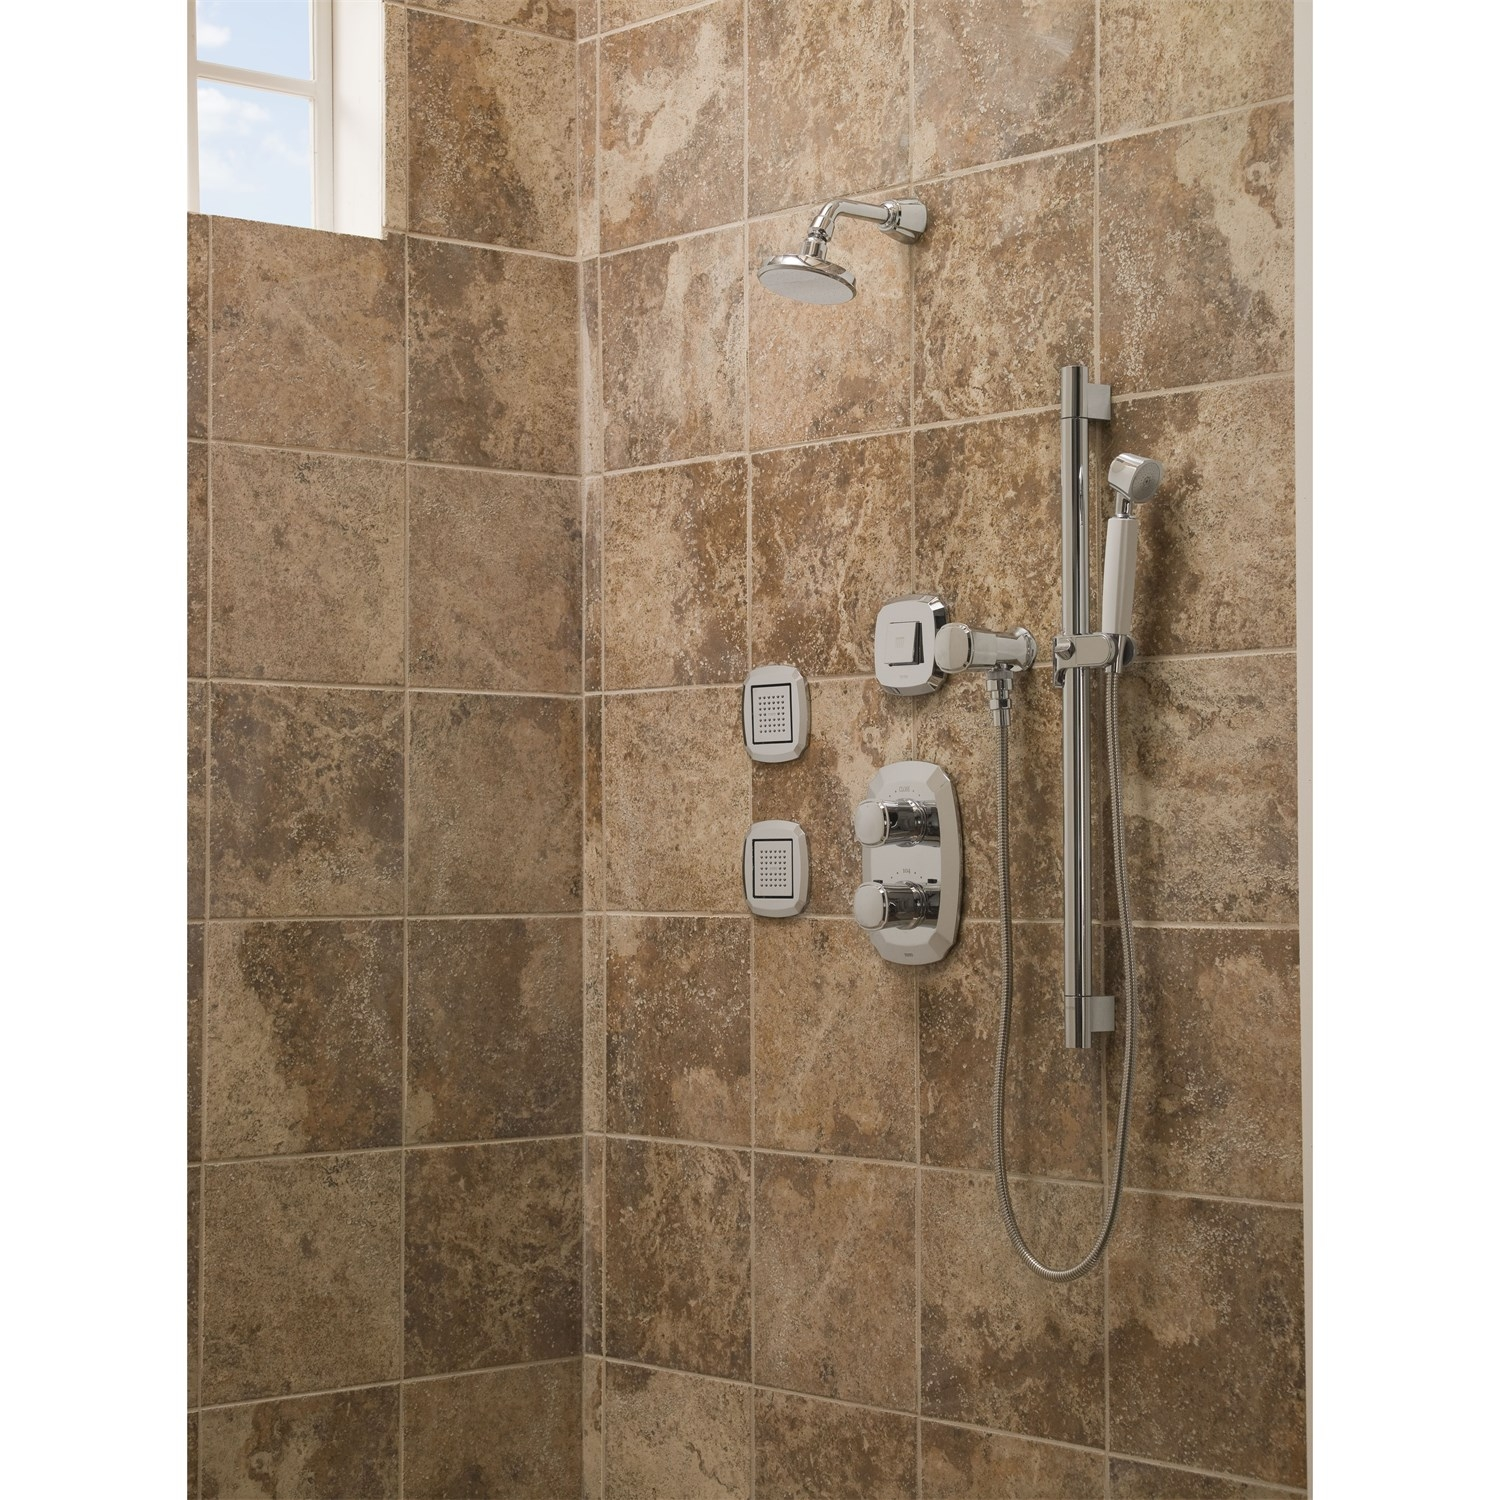 Ideas, toto ts970h guinevere cast brass hand shower set 1 spray mode within size 1500 x 1500  .